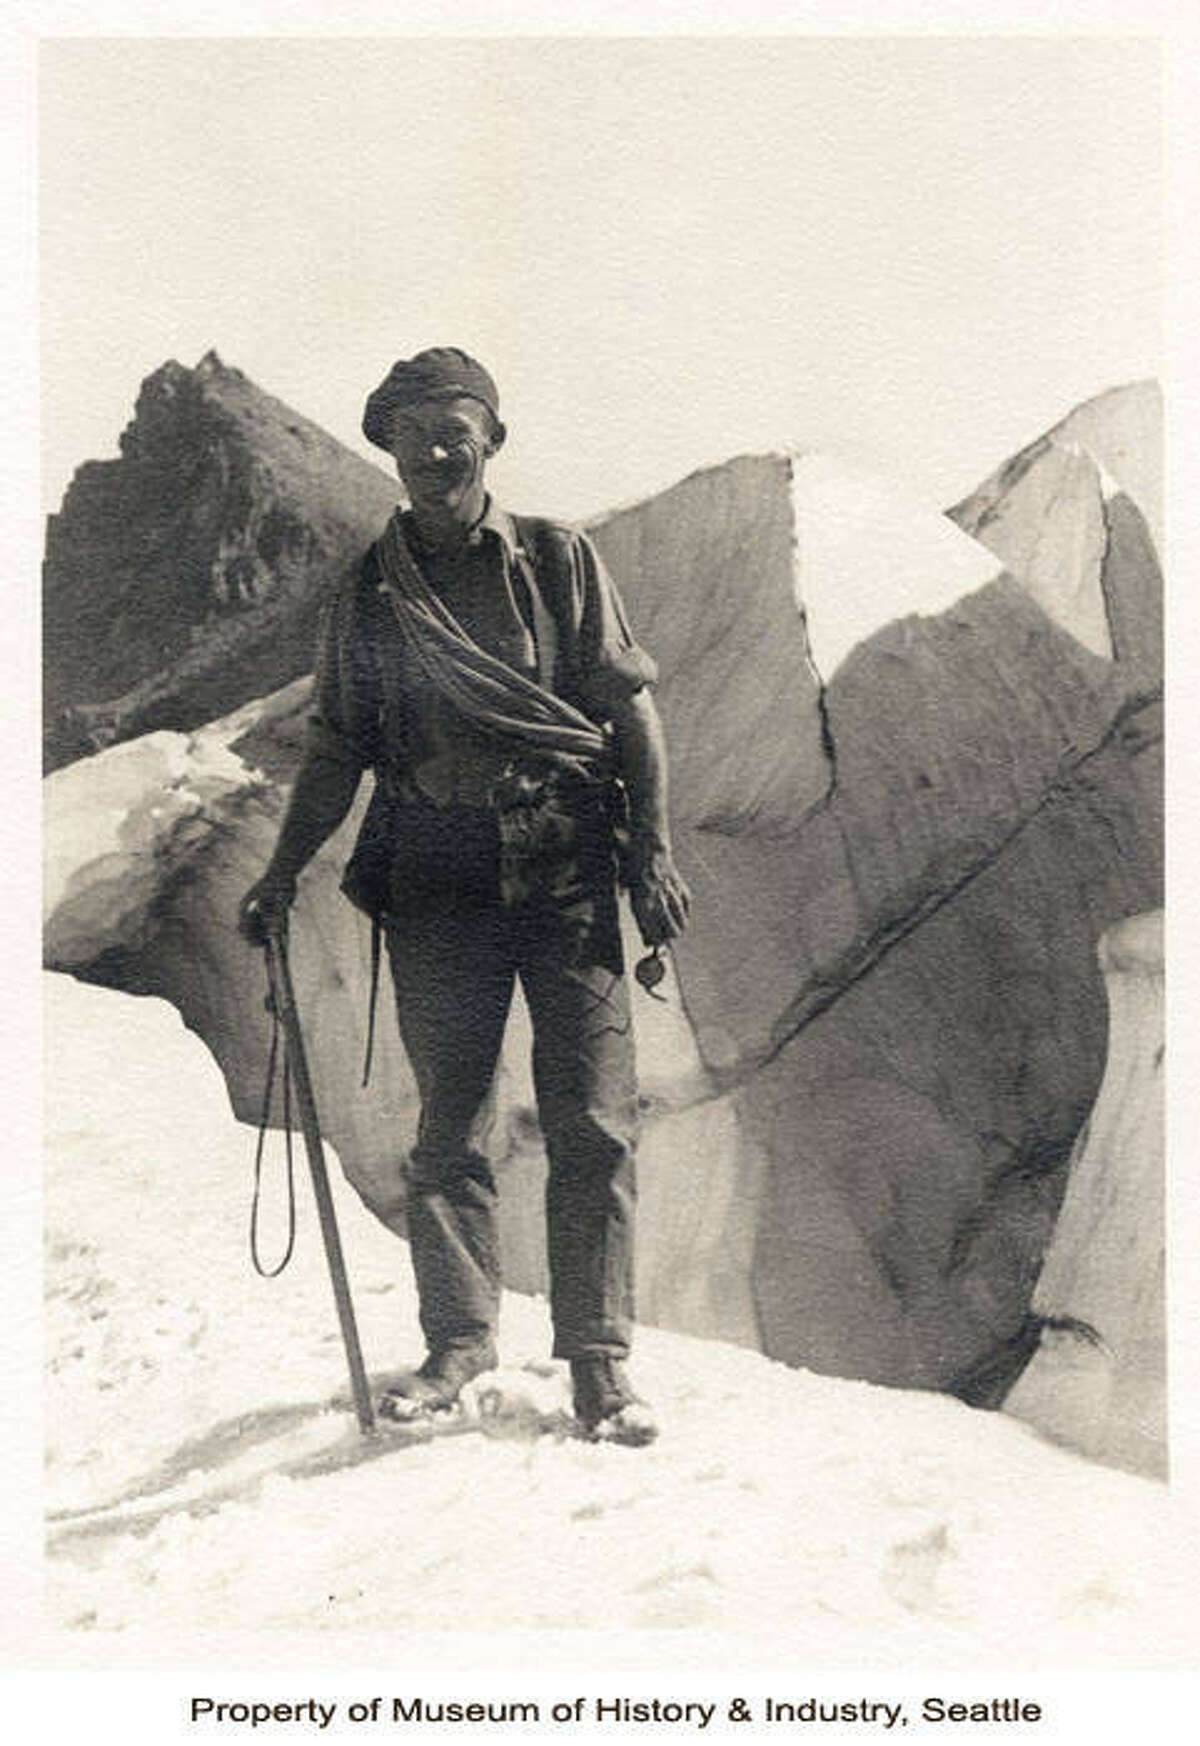 """""""Charles Browne became a National Park Service Ranger around 1928, working first in Mount Rainier National Park, and later in Olympic National Park. After 37 years of service, Browne retired from the National Park Service in 1965."""" -MOHAI. Photo courtesy MOHAI, Charles Browne Mount Rainier Park Ranger Photographs, image number 2009.16.3."""